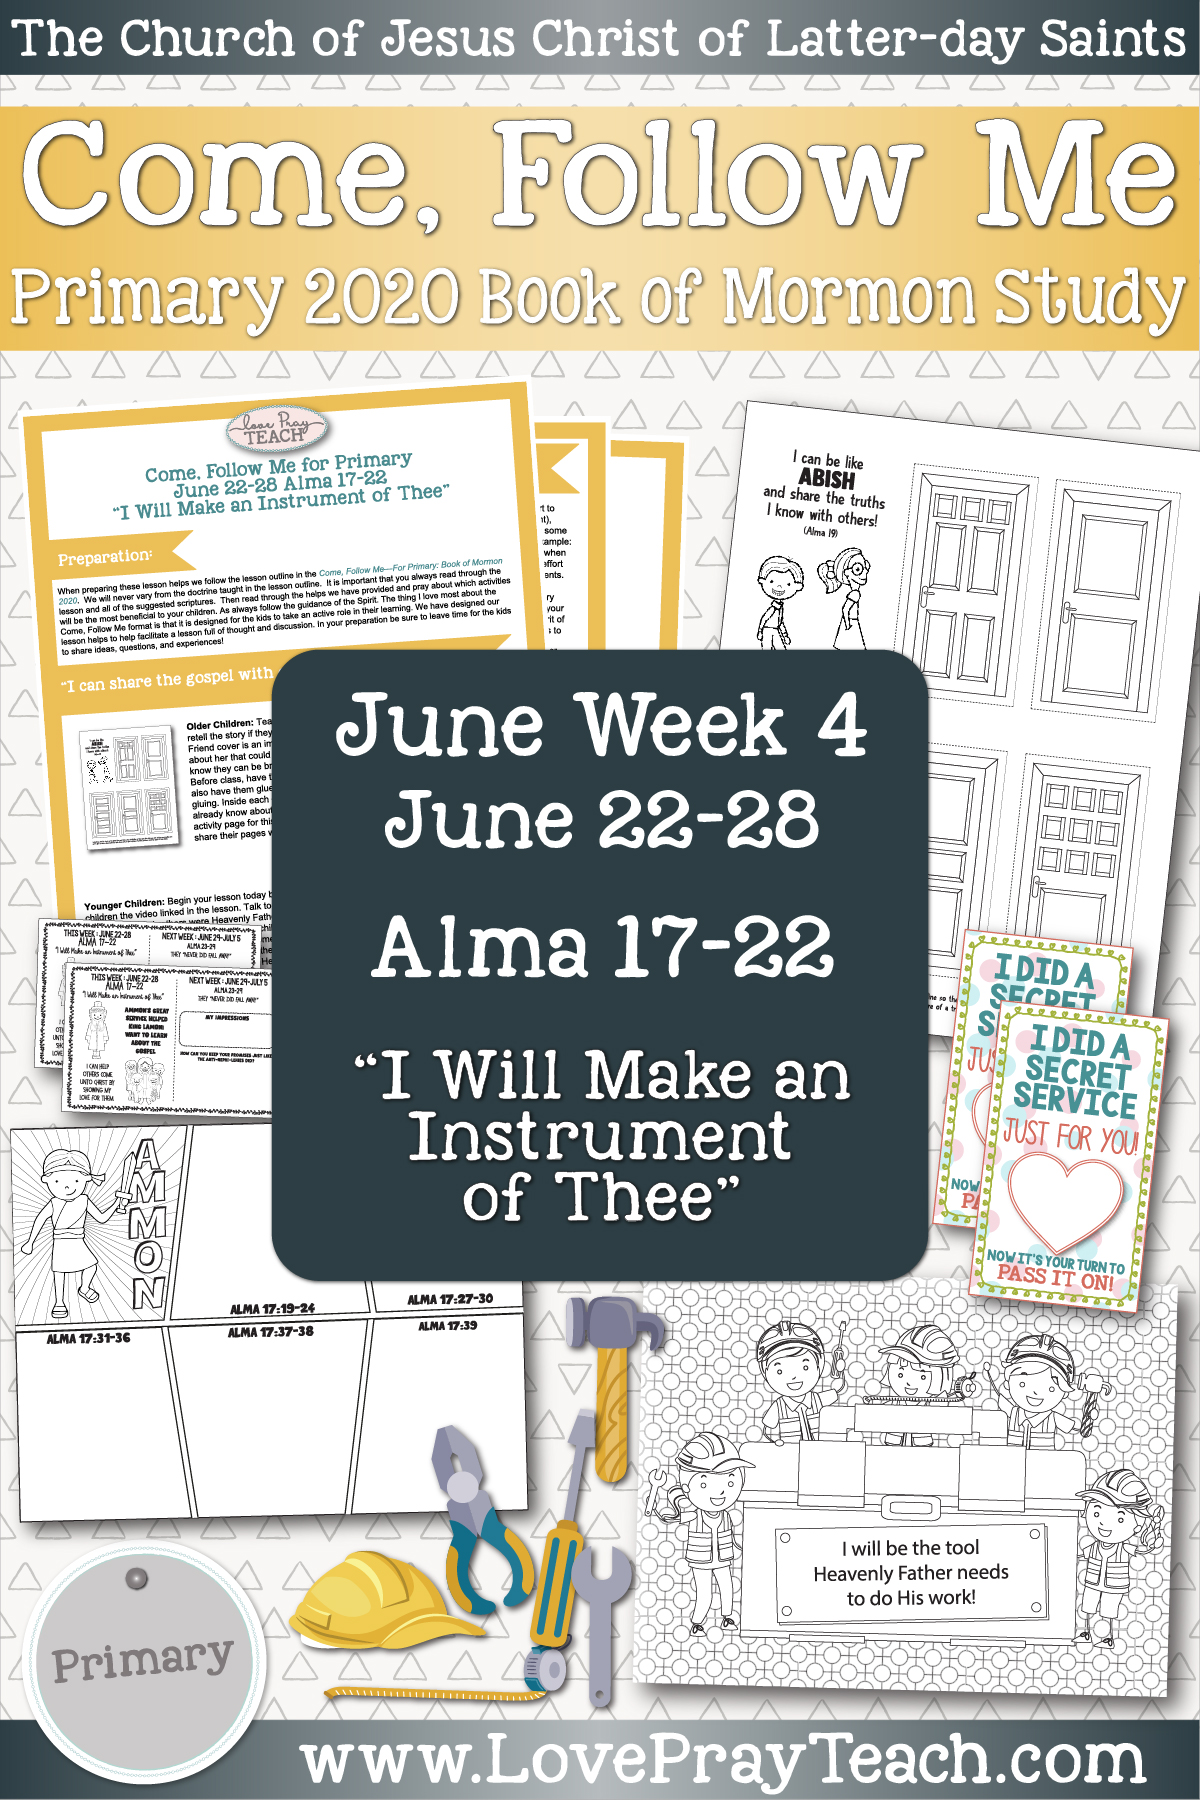 "Come, Follow Me for Primary June Week 4: June 22-28 Alma 17-22 ""I Will Make an Instrument of Thee"" www.LovePrayTeach.com"